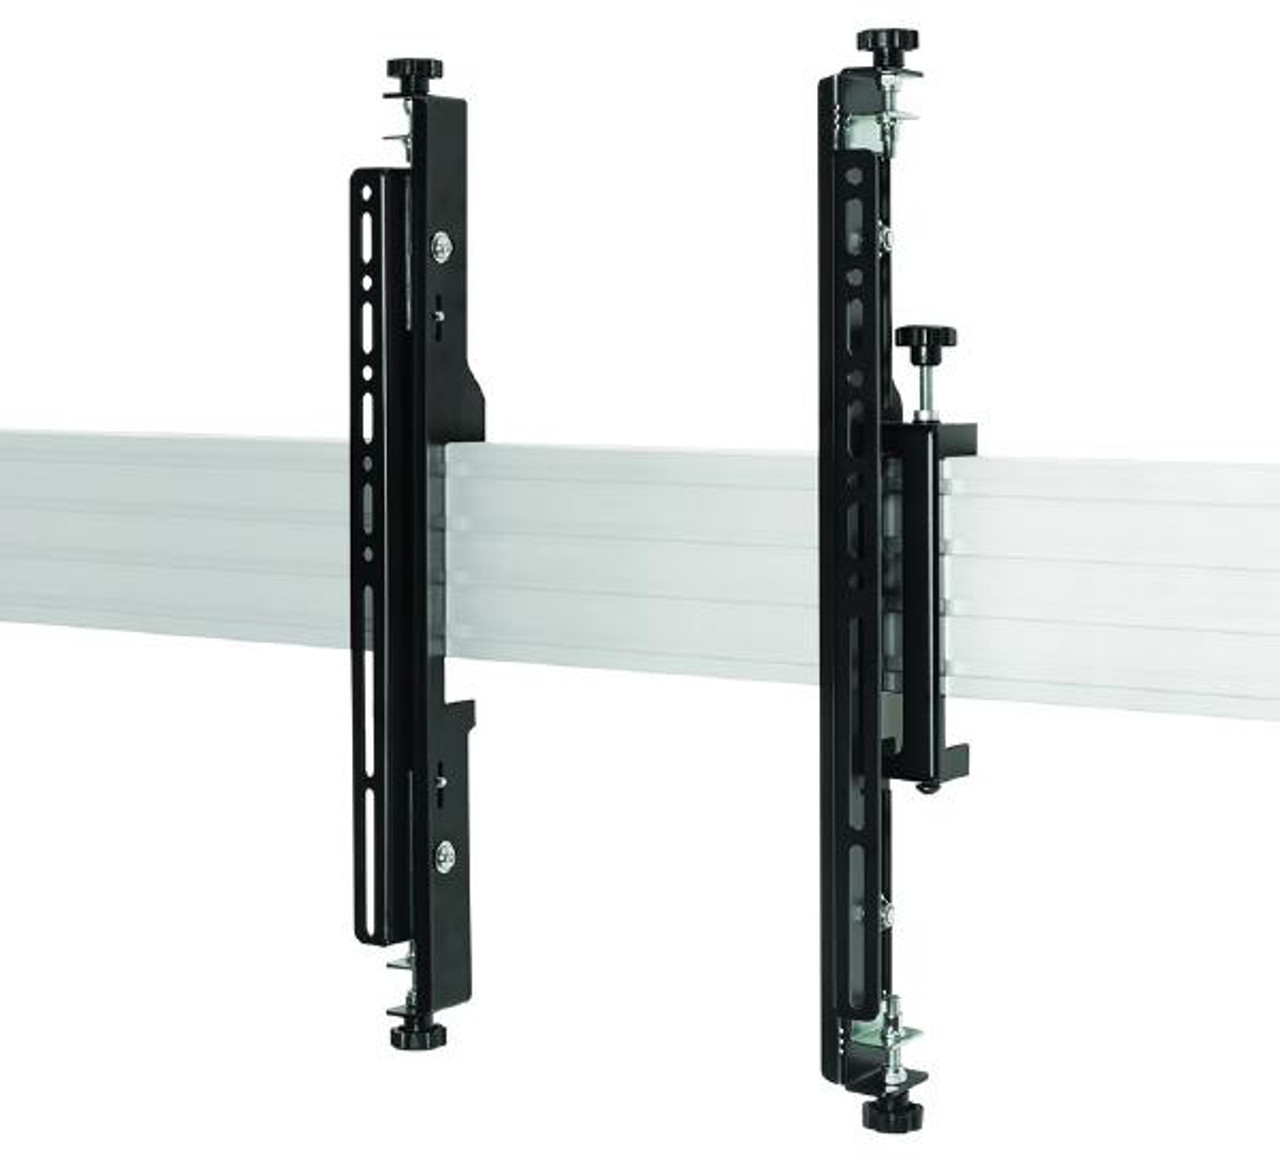 Product image for Atdec ADM-B-V400M - VESA 400 fixed brackets with fine adjustments (set of two) | CX Computer Superstore